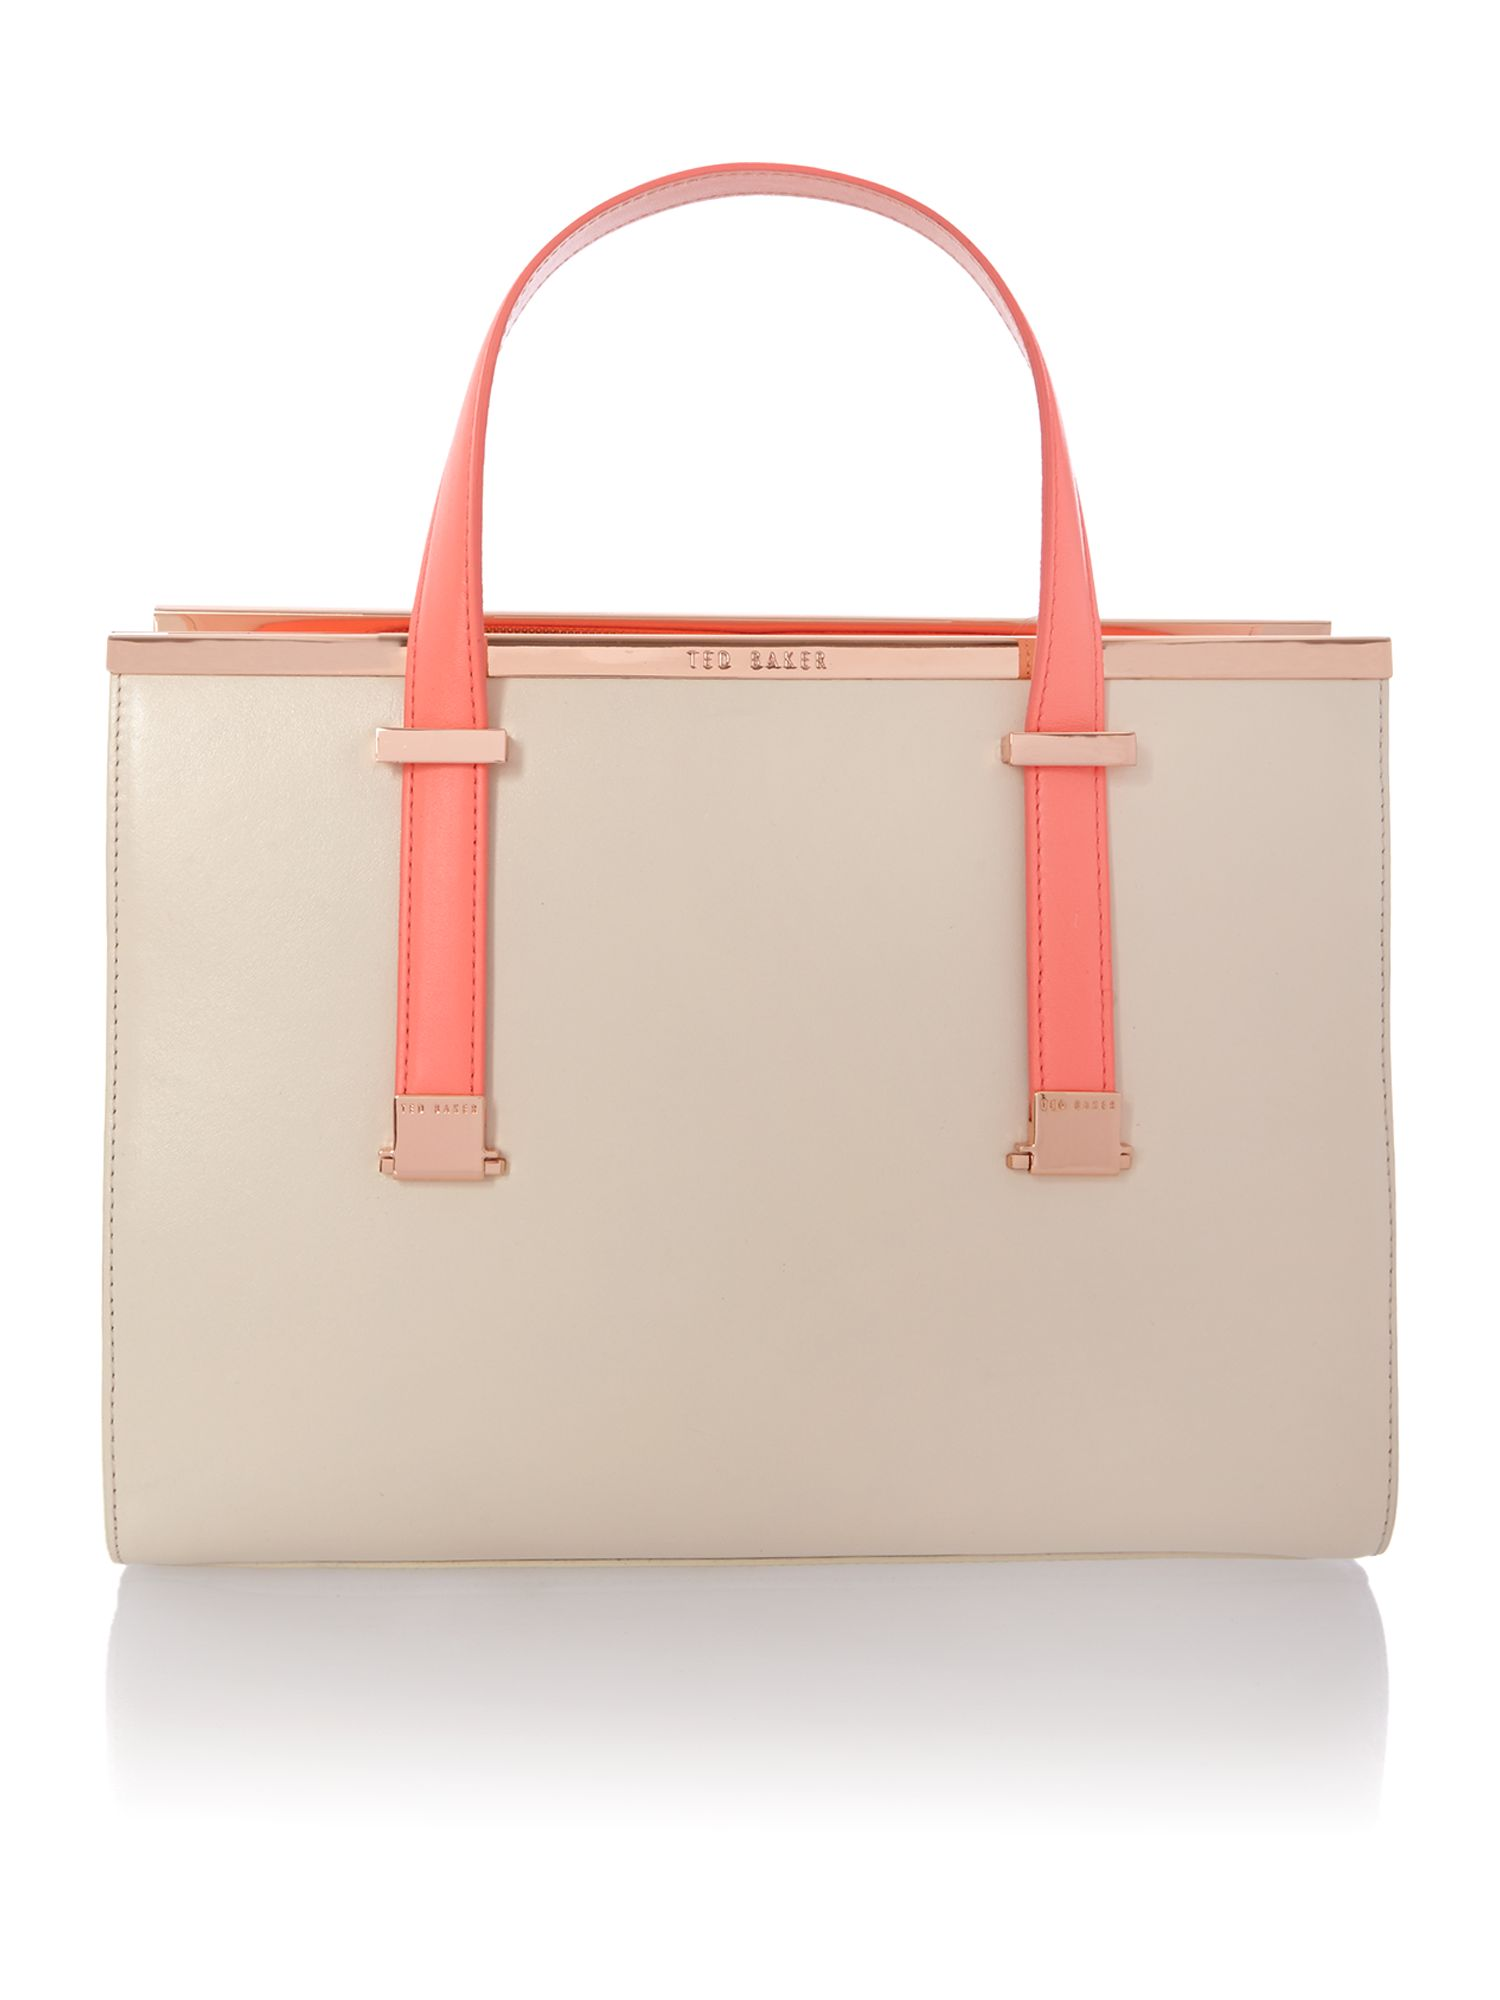 Small nude and pink tote bag